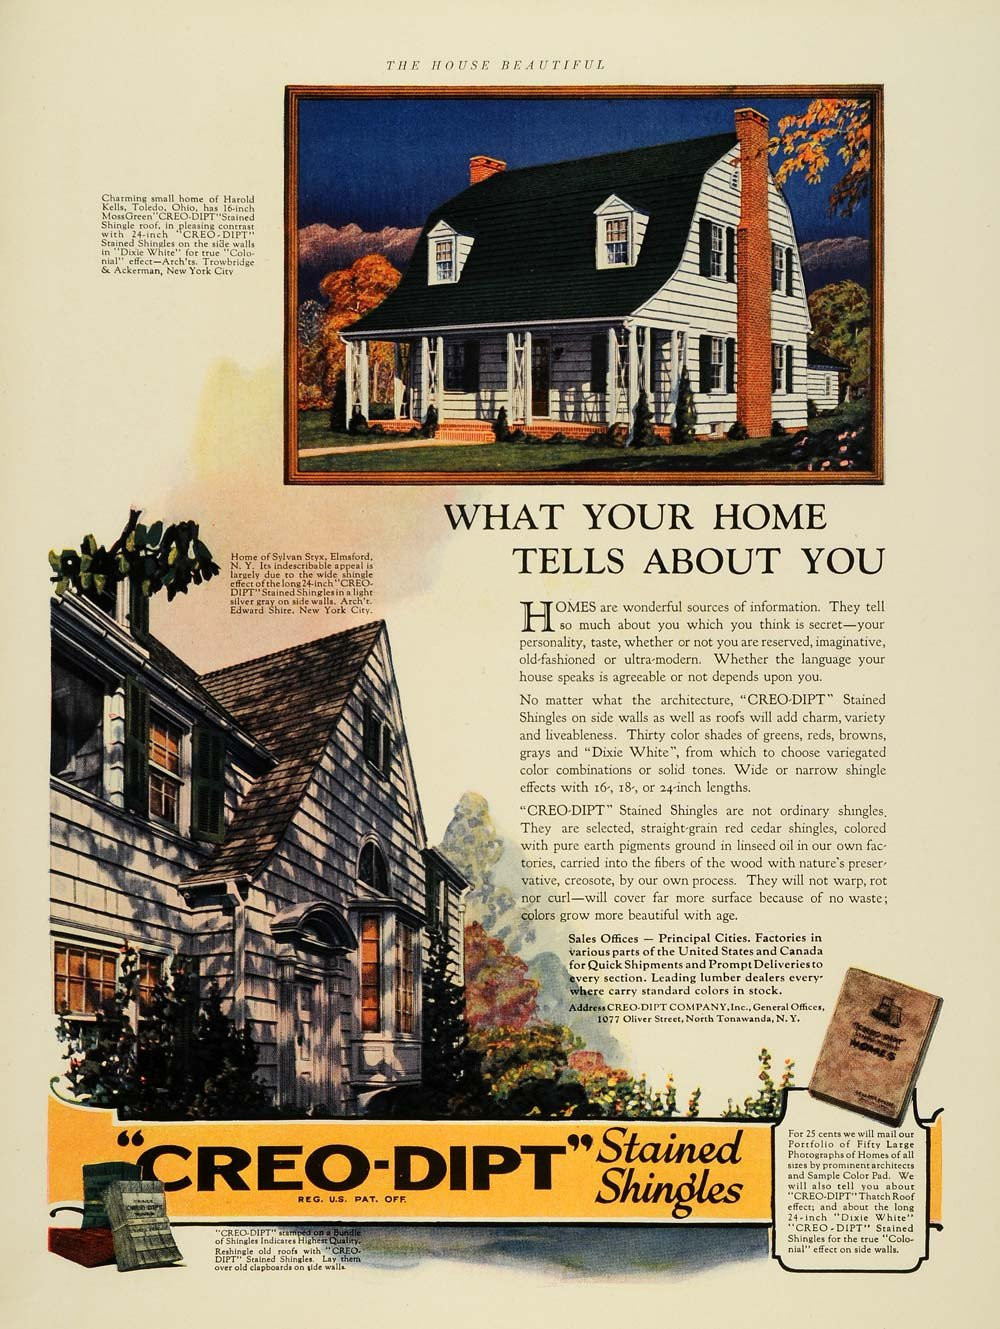 Hardwood Flooring Elmsford New York Of Other Advertising Tagged Thb1 Period Paper Regarding 1924 Ad Creo Dipt Stained Shingles Home Improvement original Advertising Thb1